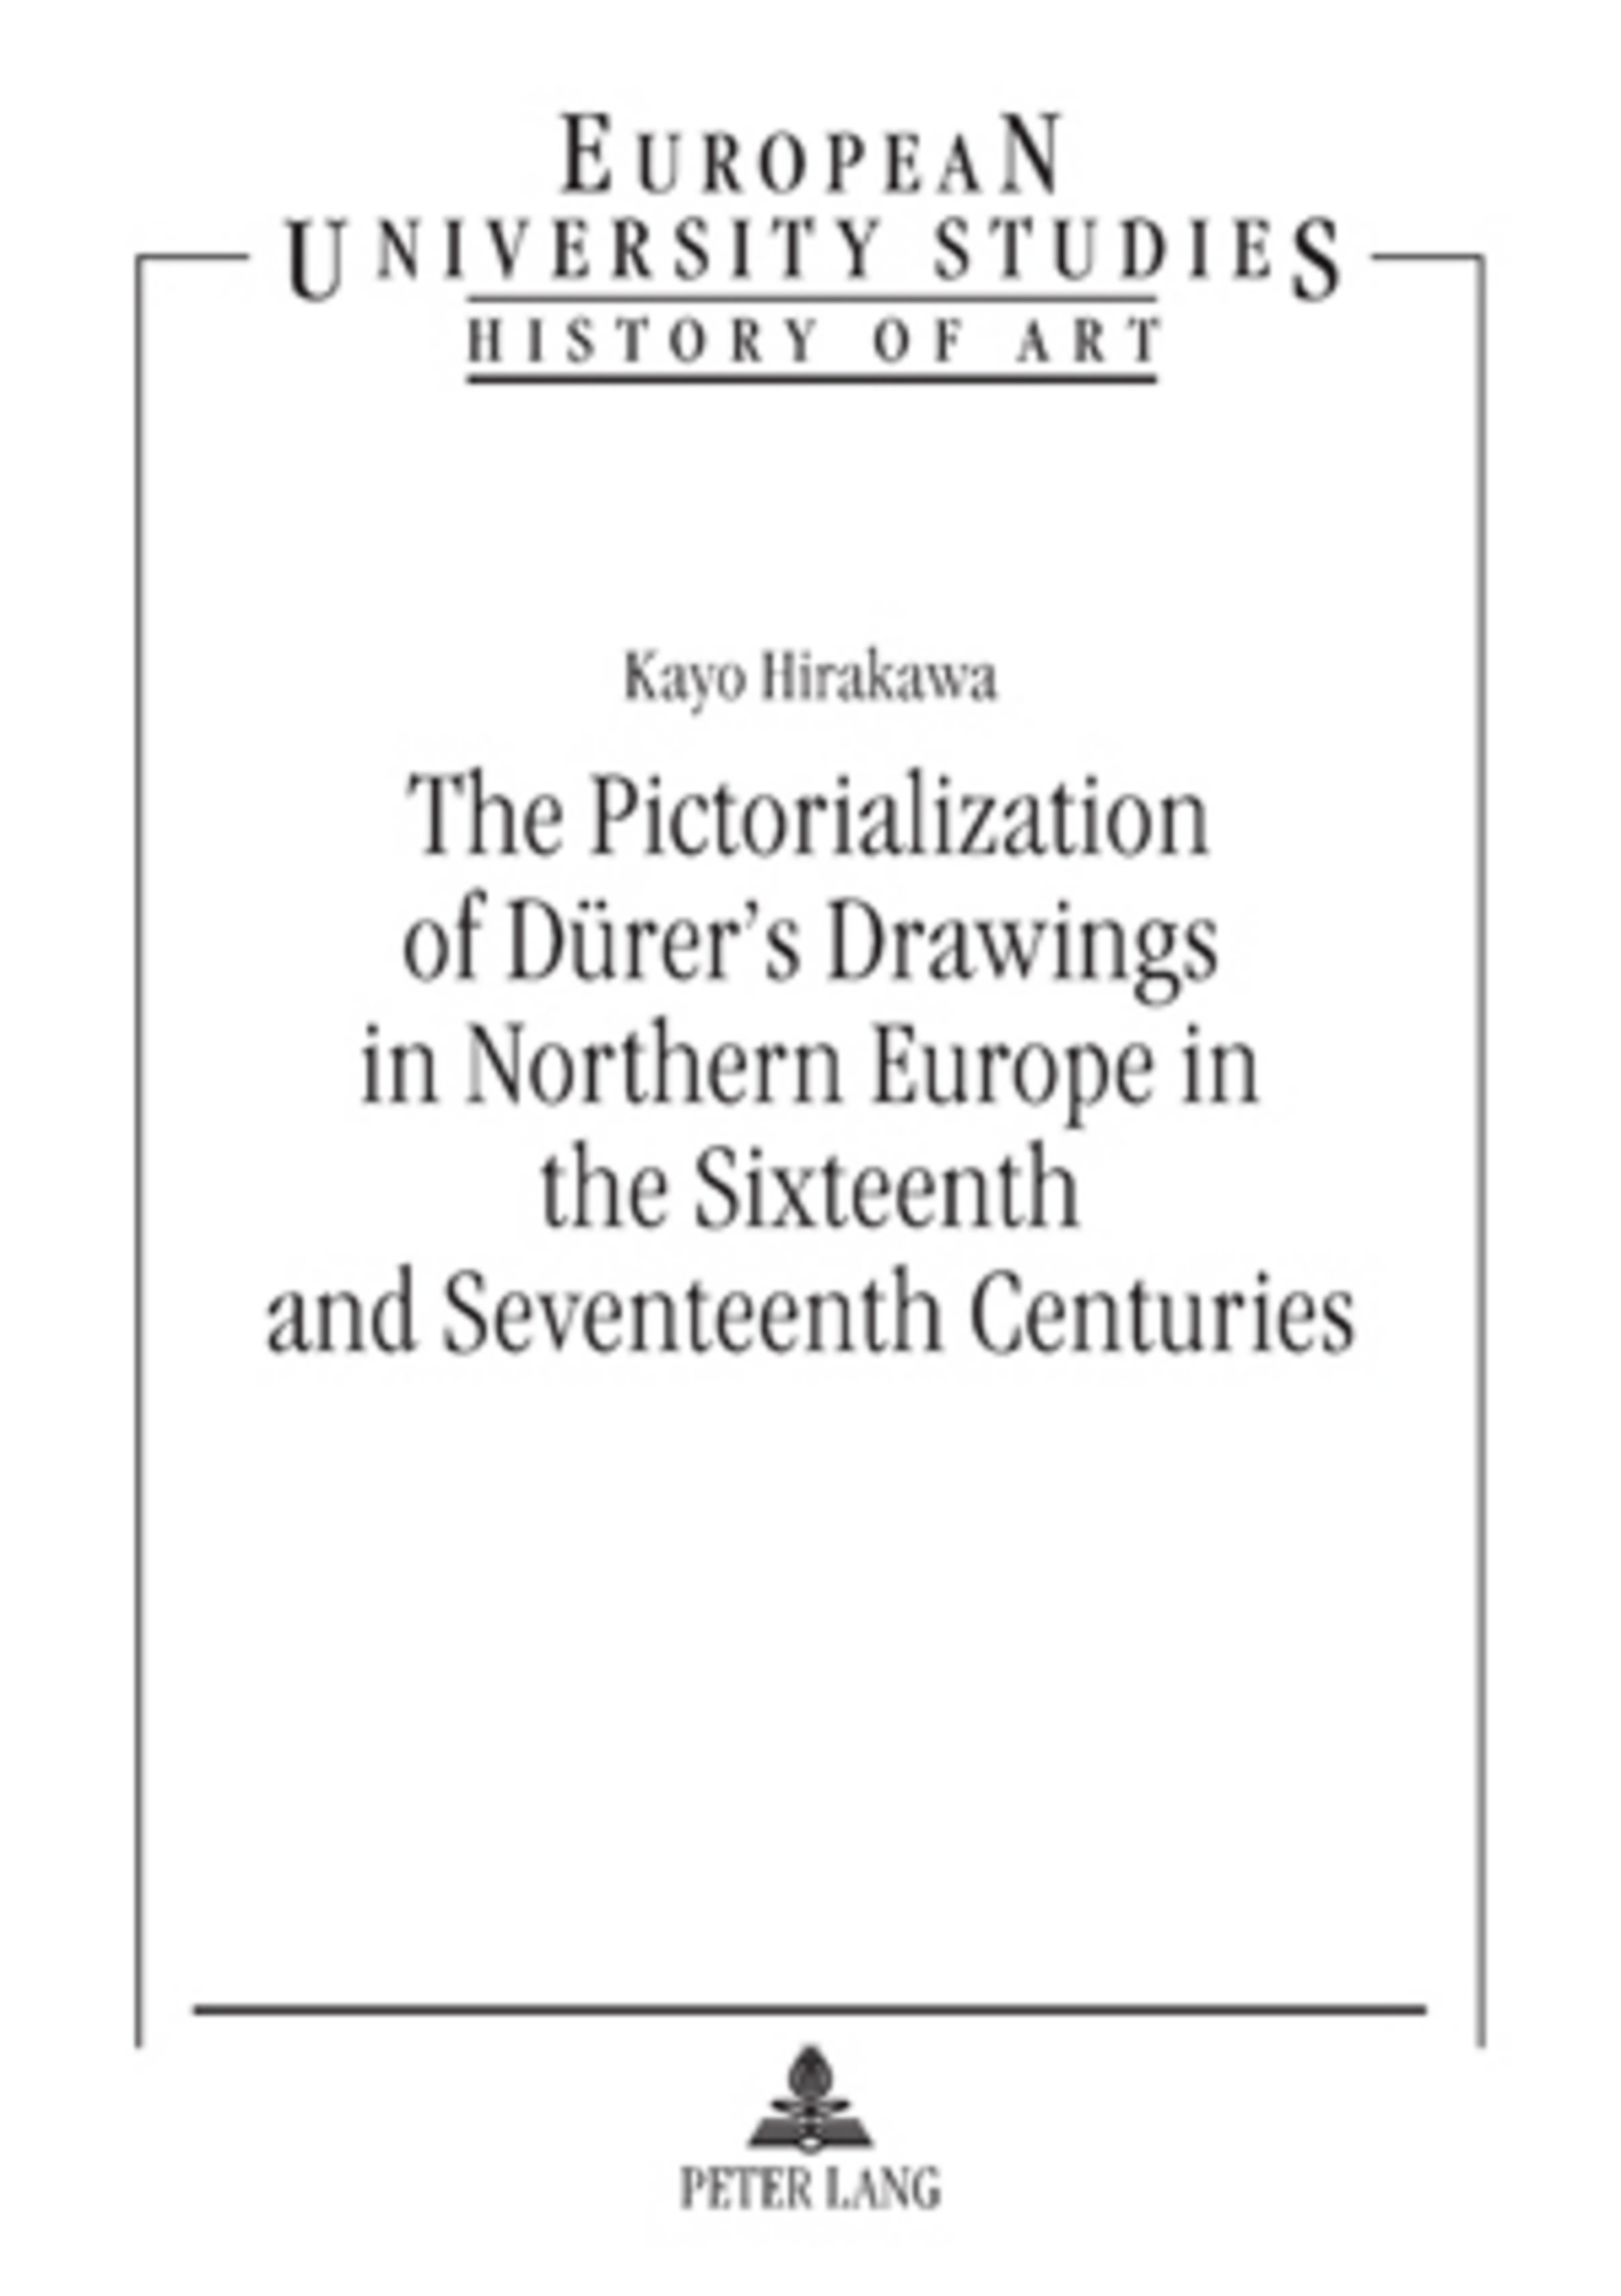 The Pictorialization of Dürer's Drawings in Northern Europe in the Sixteenth and Seventeenth Centuries   Dodax.ch